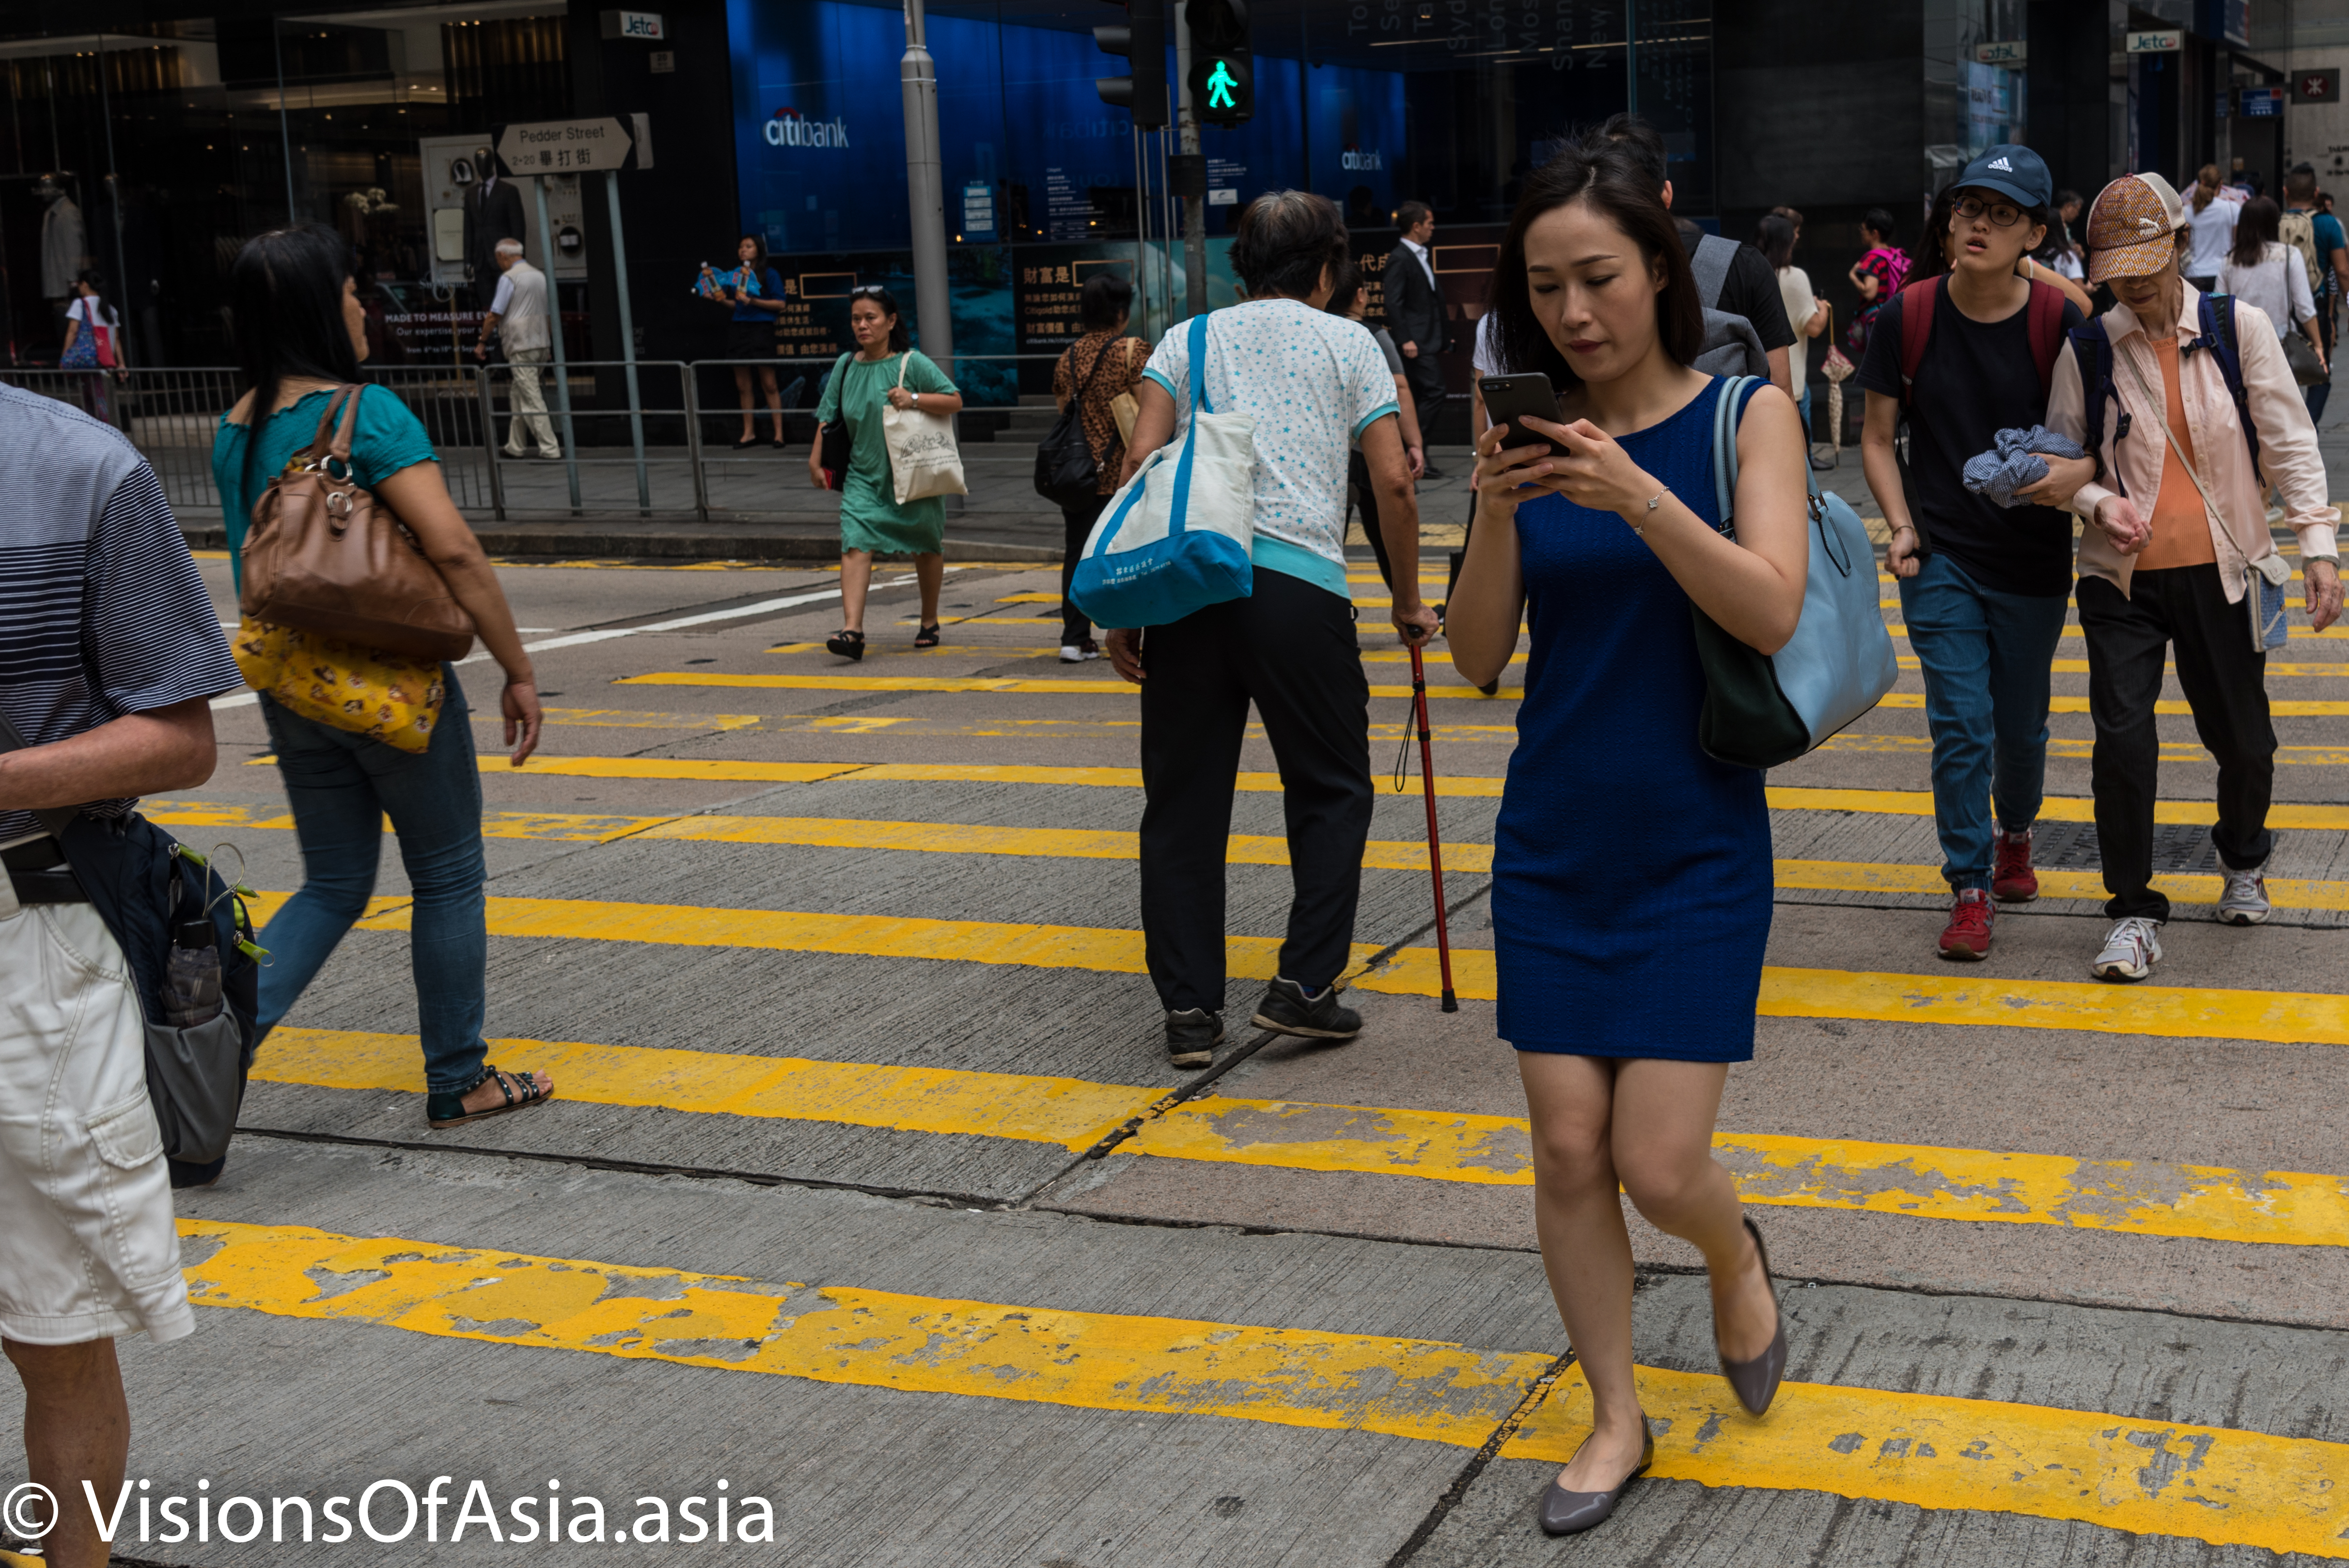 Street photography in Central Hong Kong